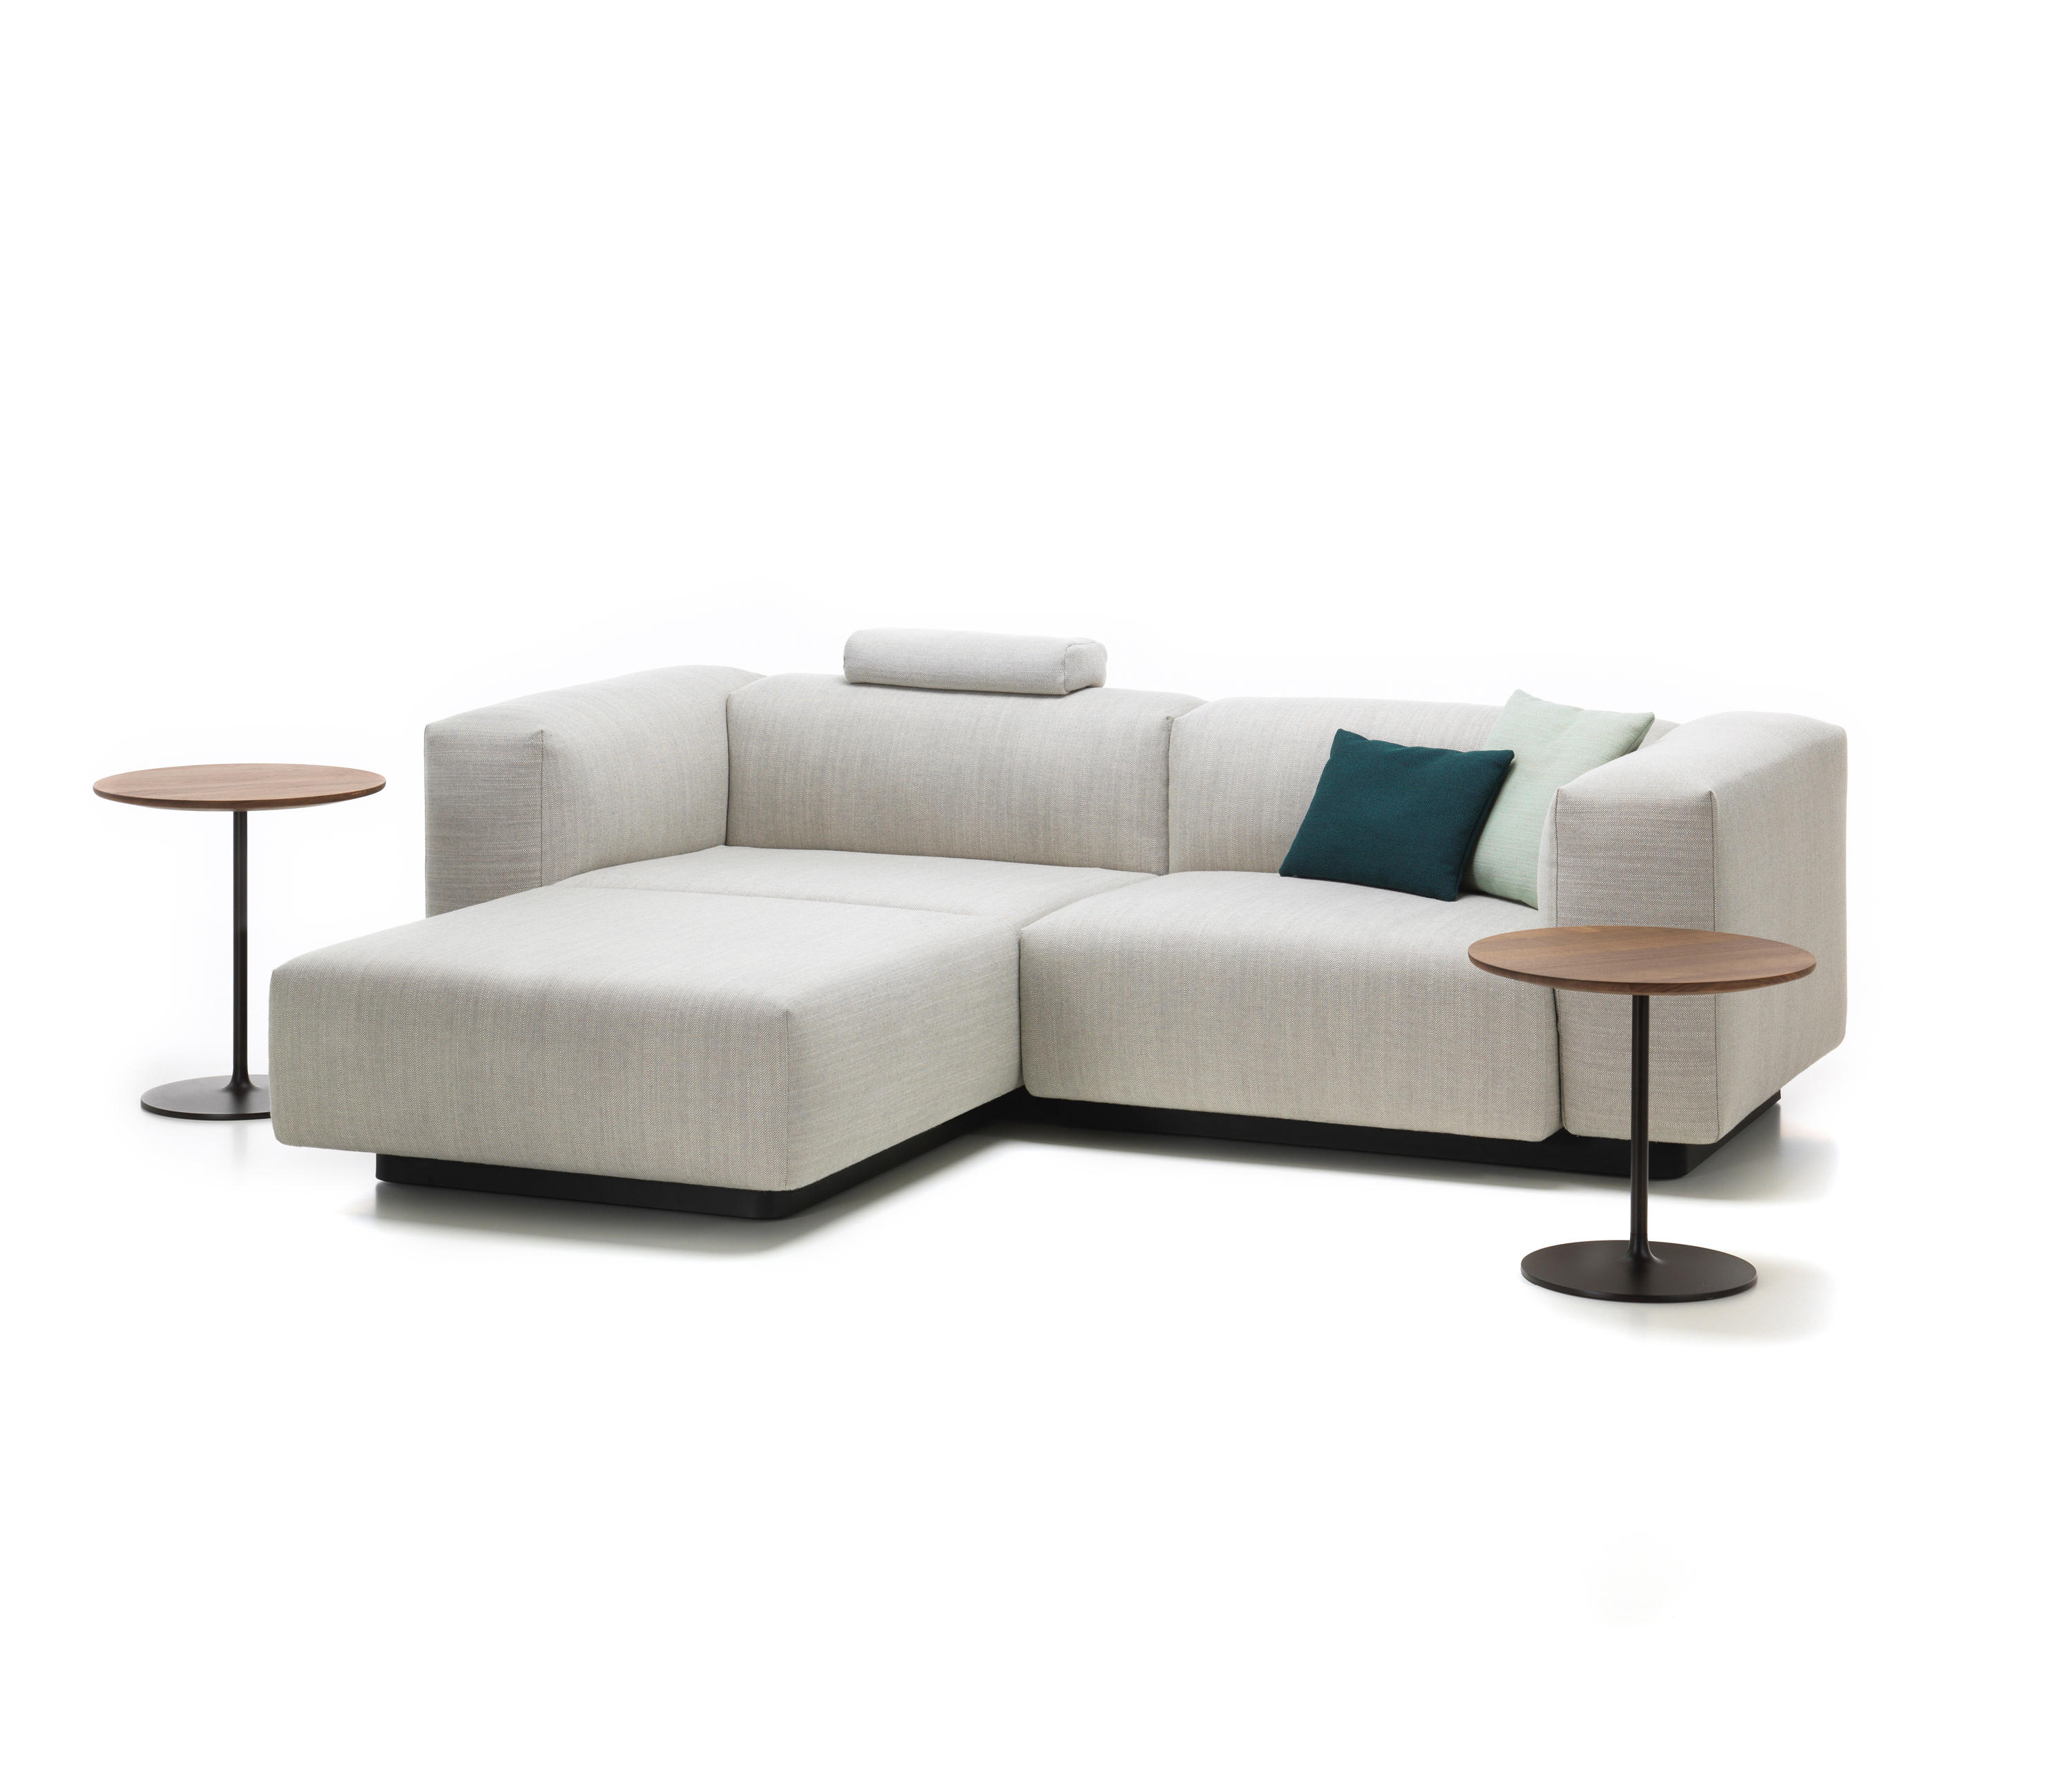 2 seater sofa with chaise sofa fascinating 2 seater chaise for 2 seater chaise lounge